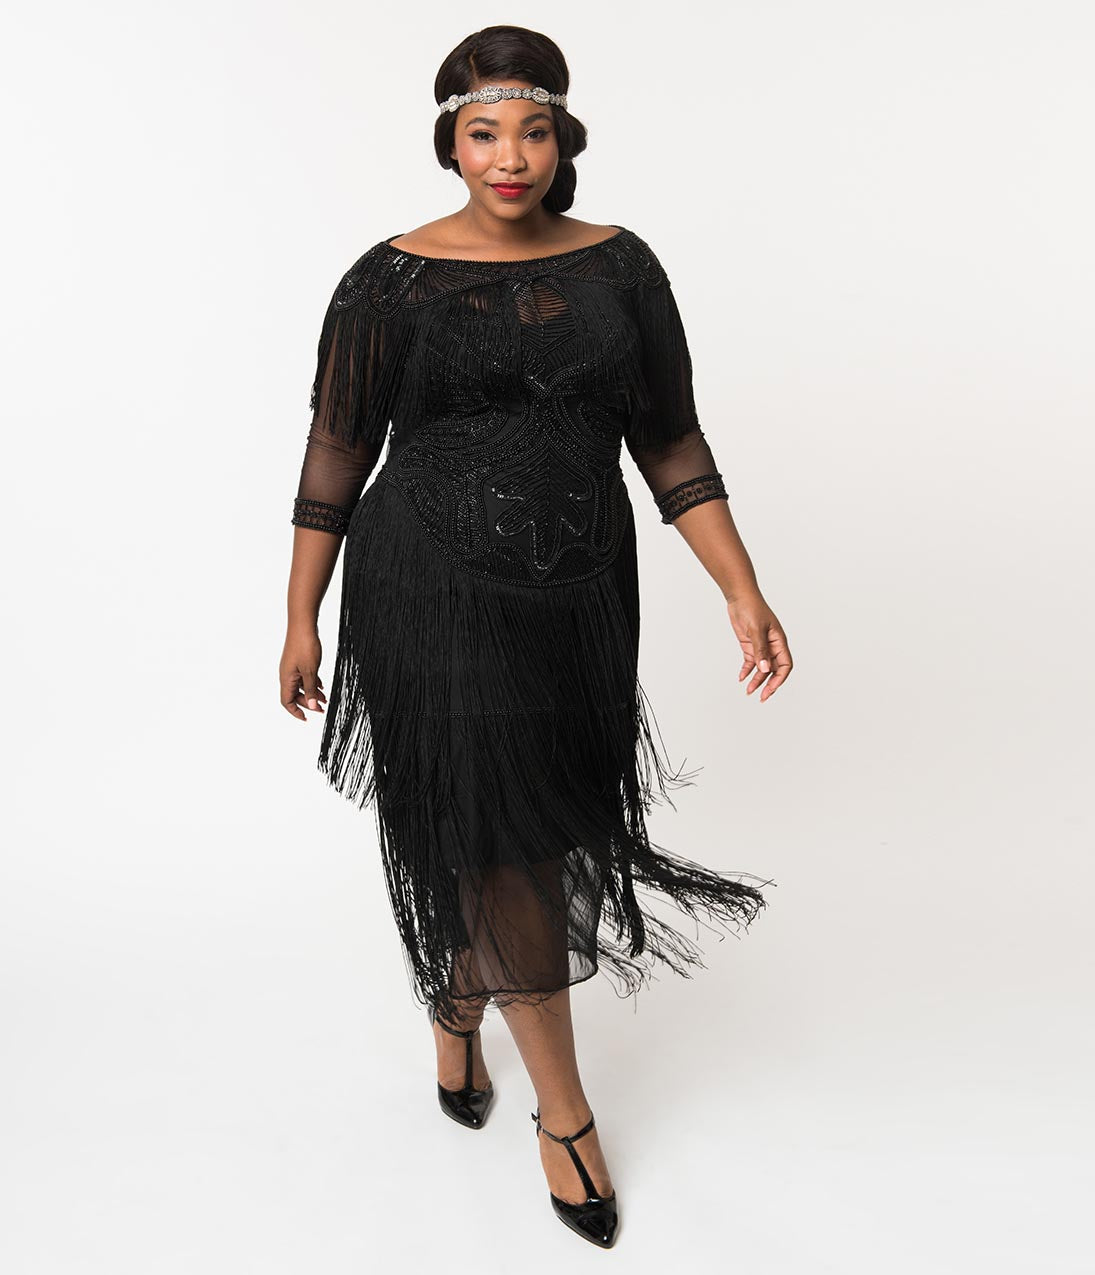 1920s Evening Gowns by Year Plus Size 1920S Style Black Beaded Mesh Glam Fringe Flapper Maxi Gown $186.00 AT vintagedancer.com